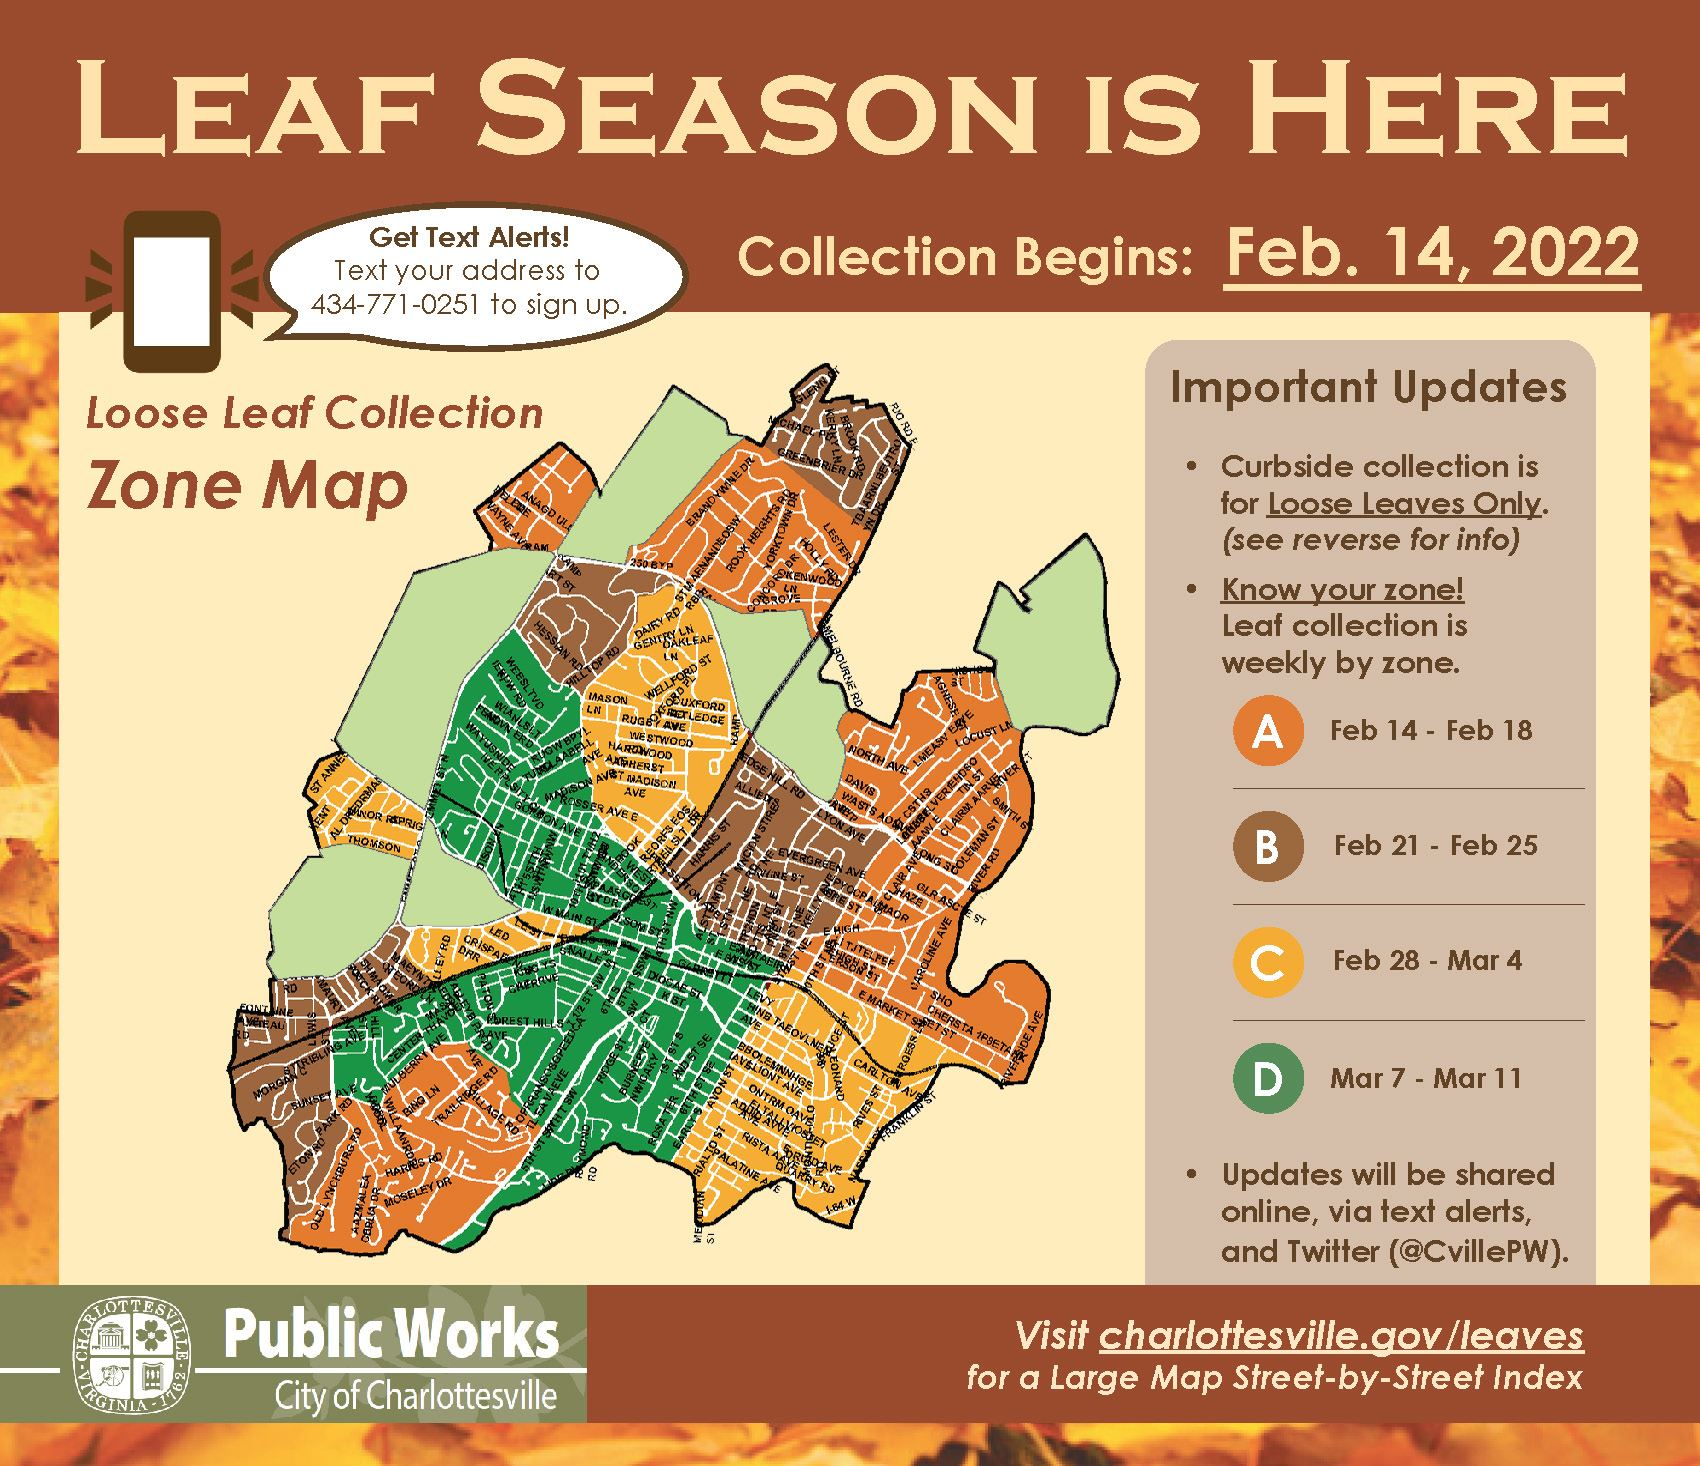 Image of the Leaf Season mailing insert & collection map.  For assistance, please call 434-970-3830.